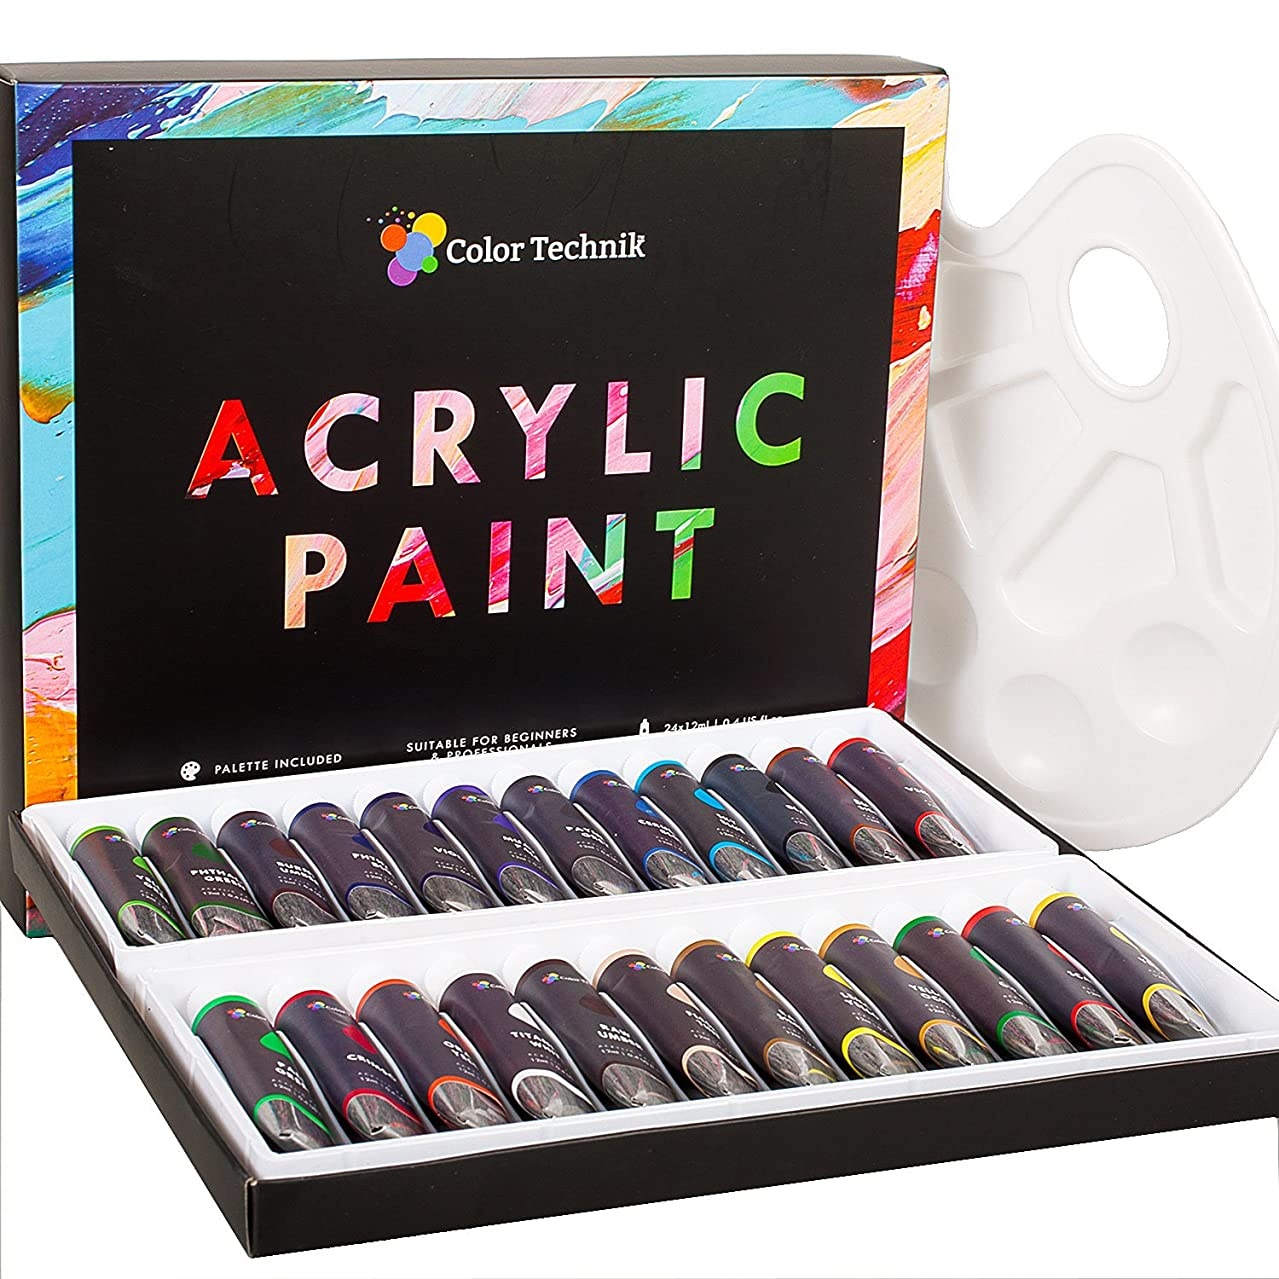 Color Technik Acrylic Paint Set, Professional Artist Quality, Palette Included, 24 Aluminium Tubes, Best Colors for Painting Canvas, Wood, Clay, Fabric, Nail Art and Ceramic, Rich Pigments, Gift Me